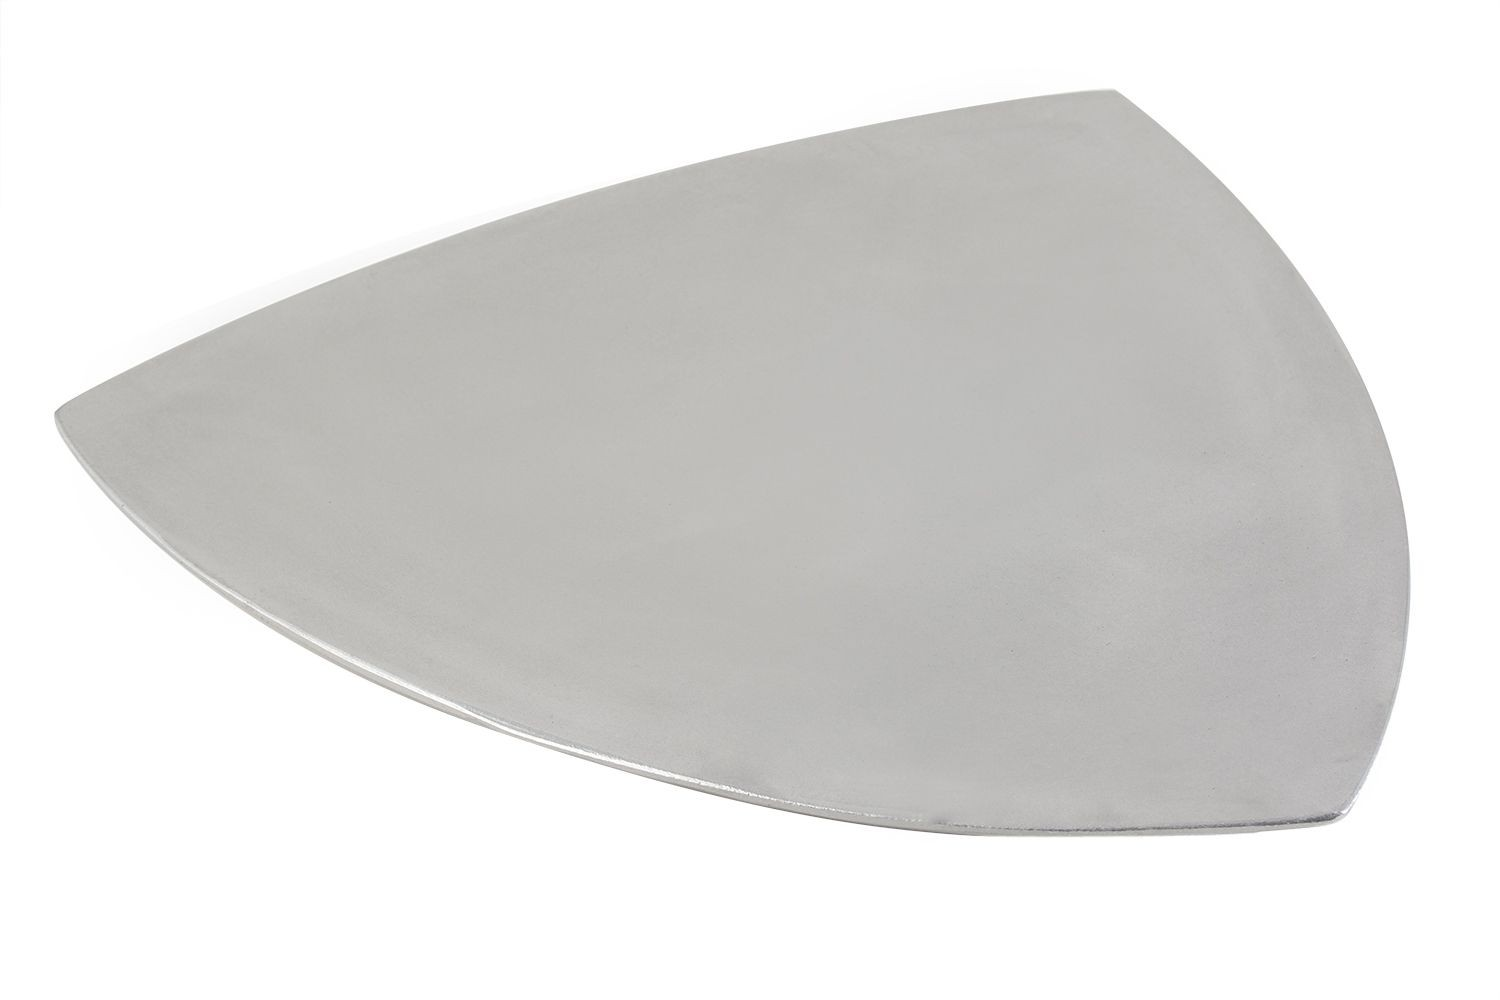 Bon Chef 9160P Triangle Serving Plate, Pewter Glo 20""